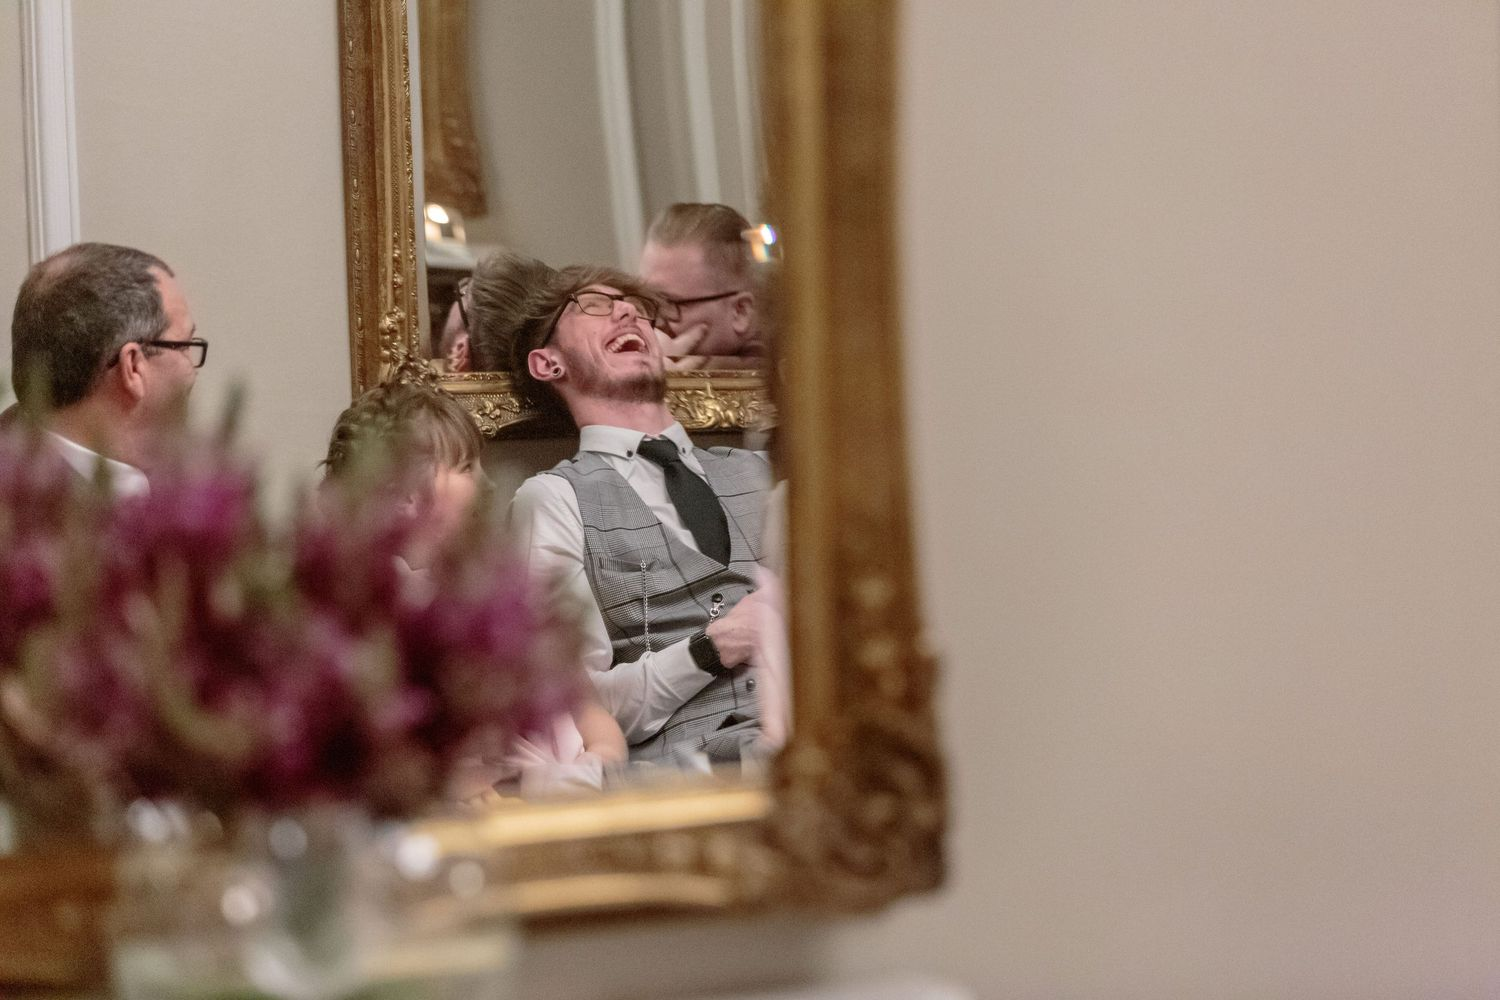 reflection shot in an ornate mirror of wedding guests laughing and chatting